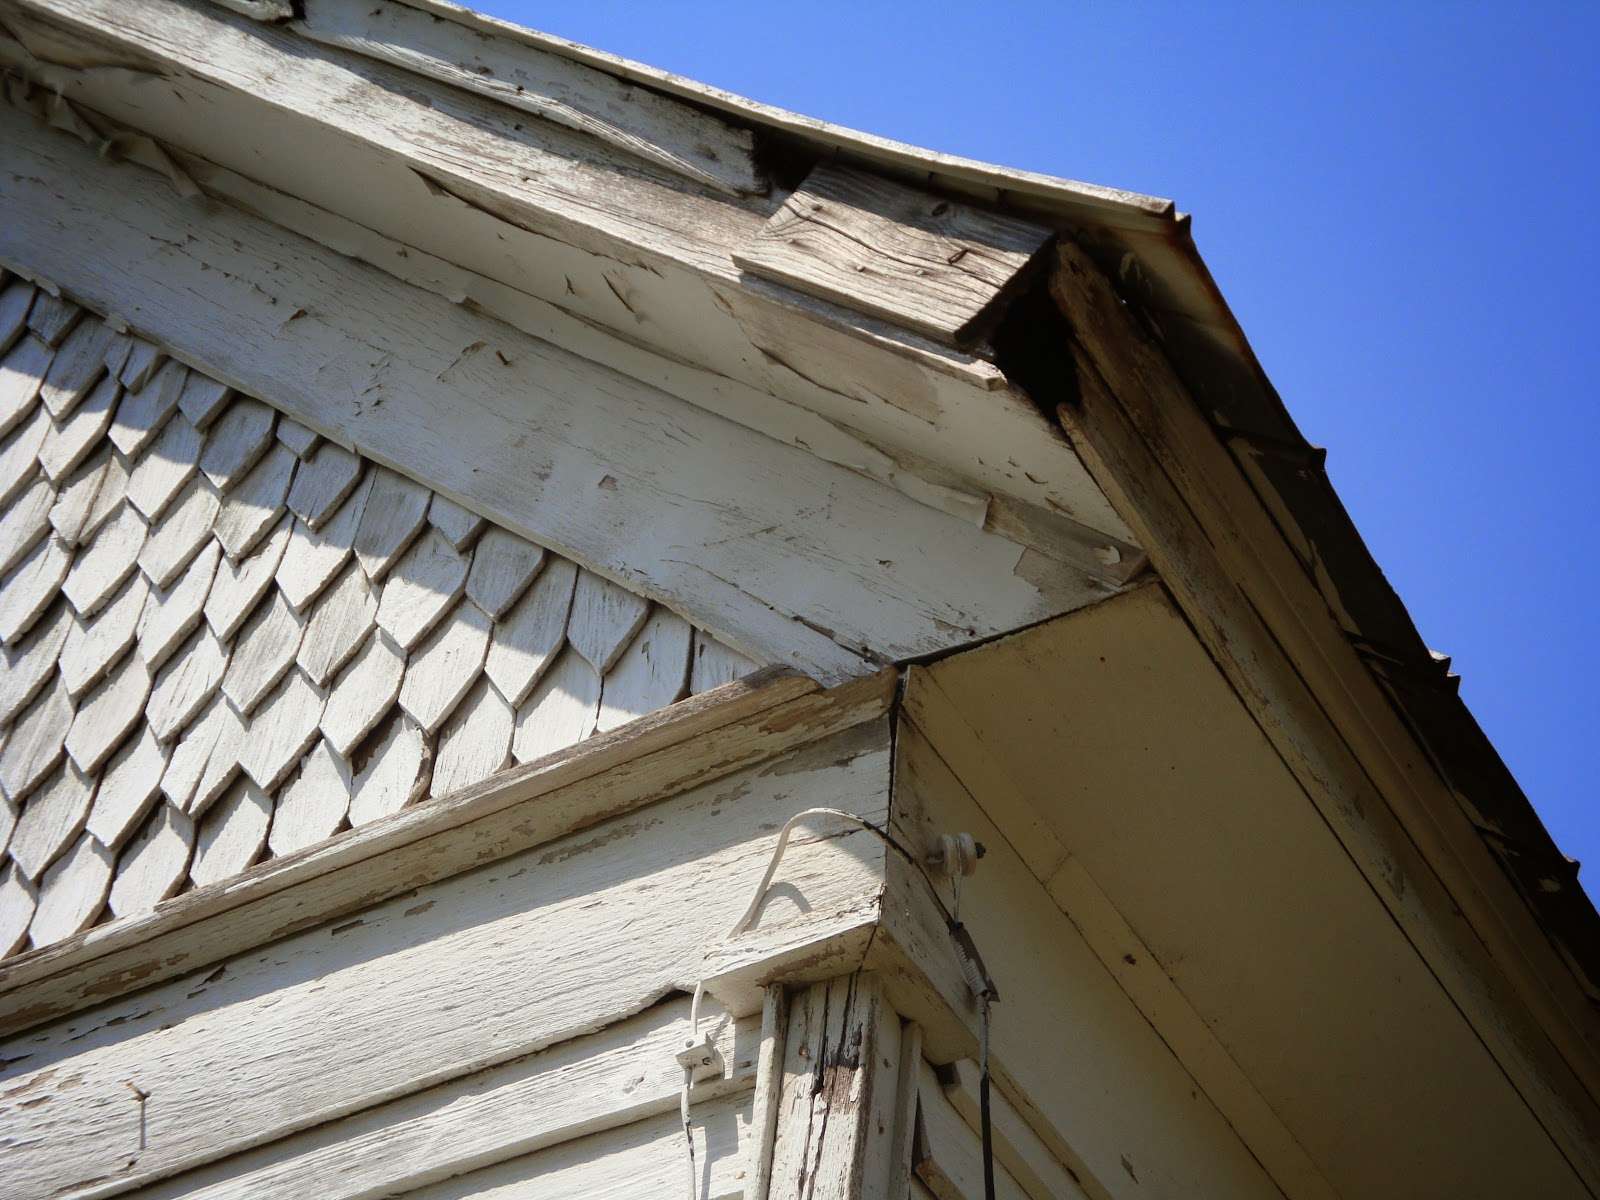 The Ledford Colley House Siding And Gables And Eaves